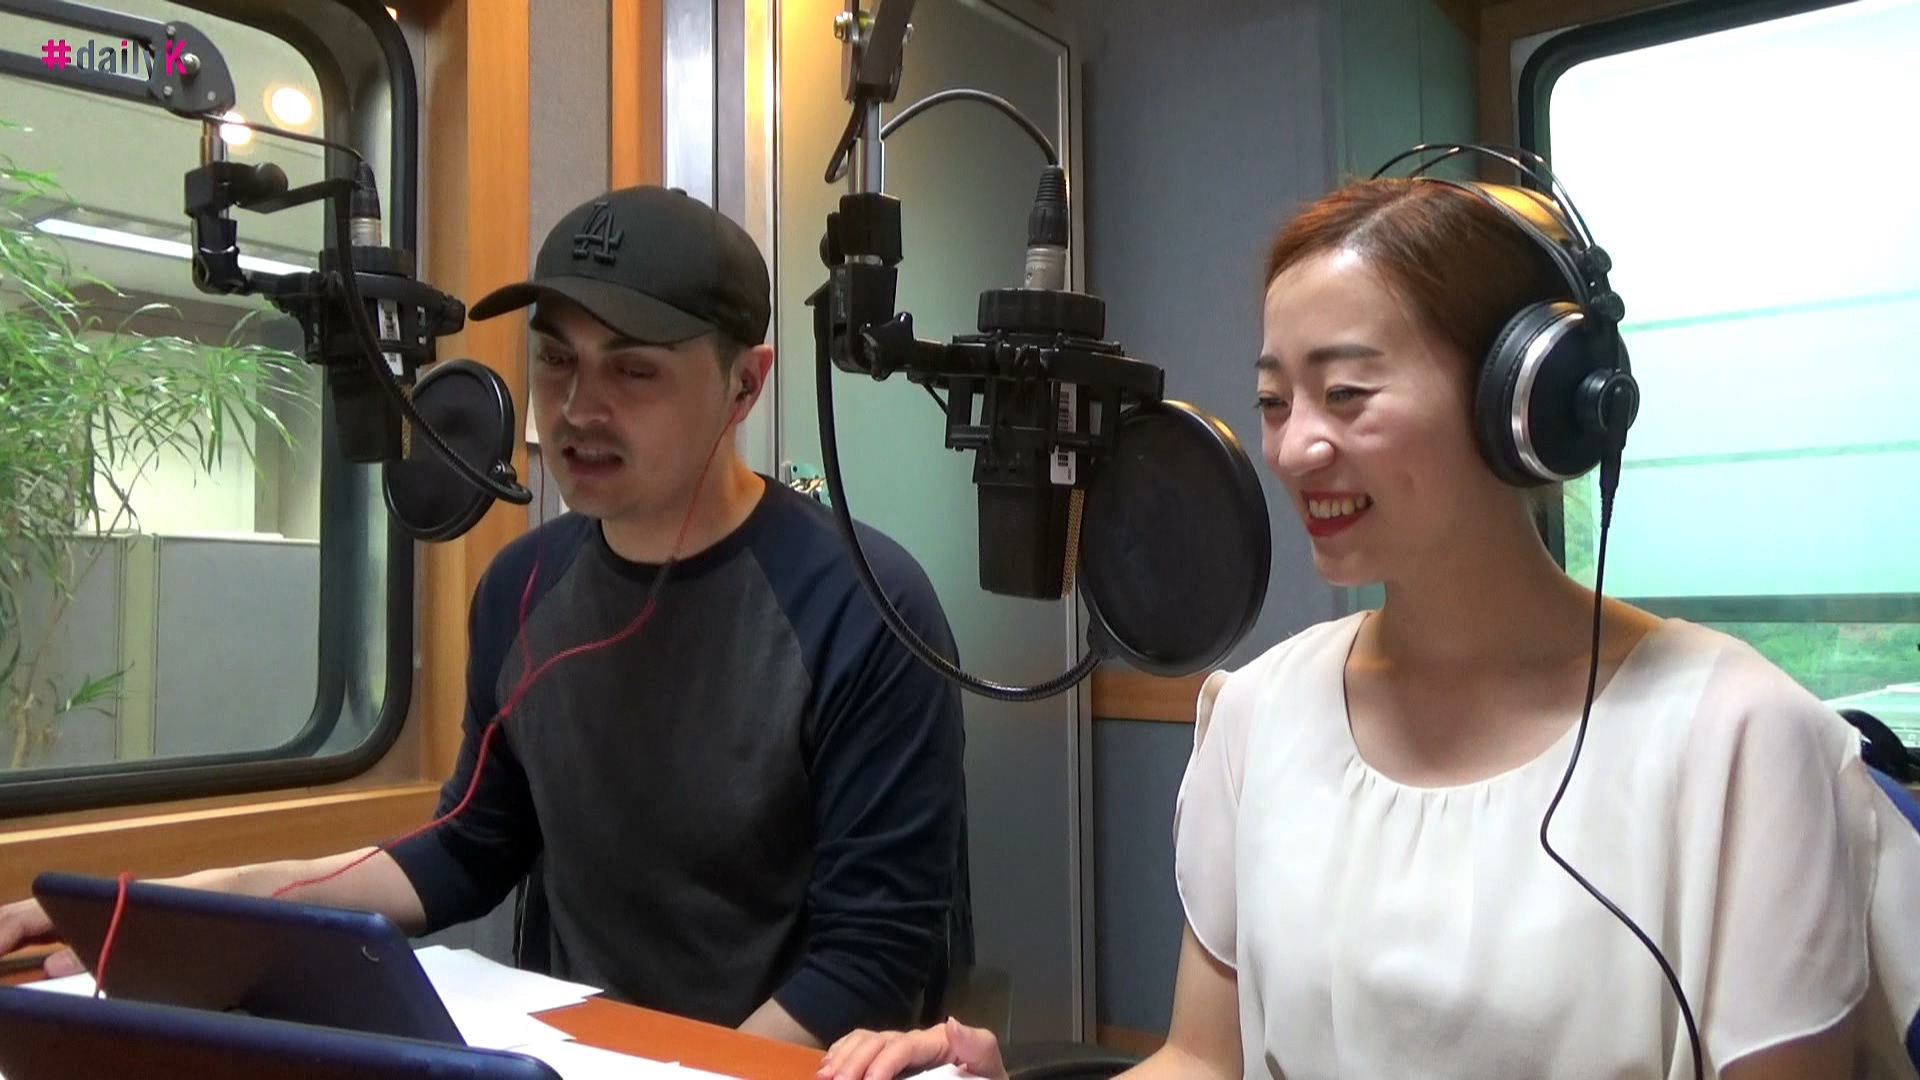 [#Daily K] K-Patch with Rachel - YouTube editing vidoes and pictures